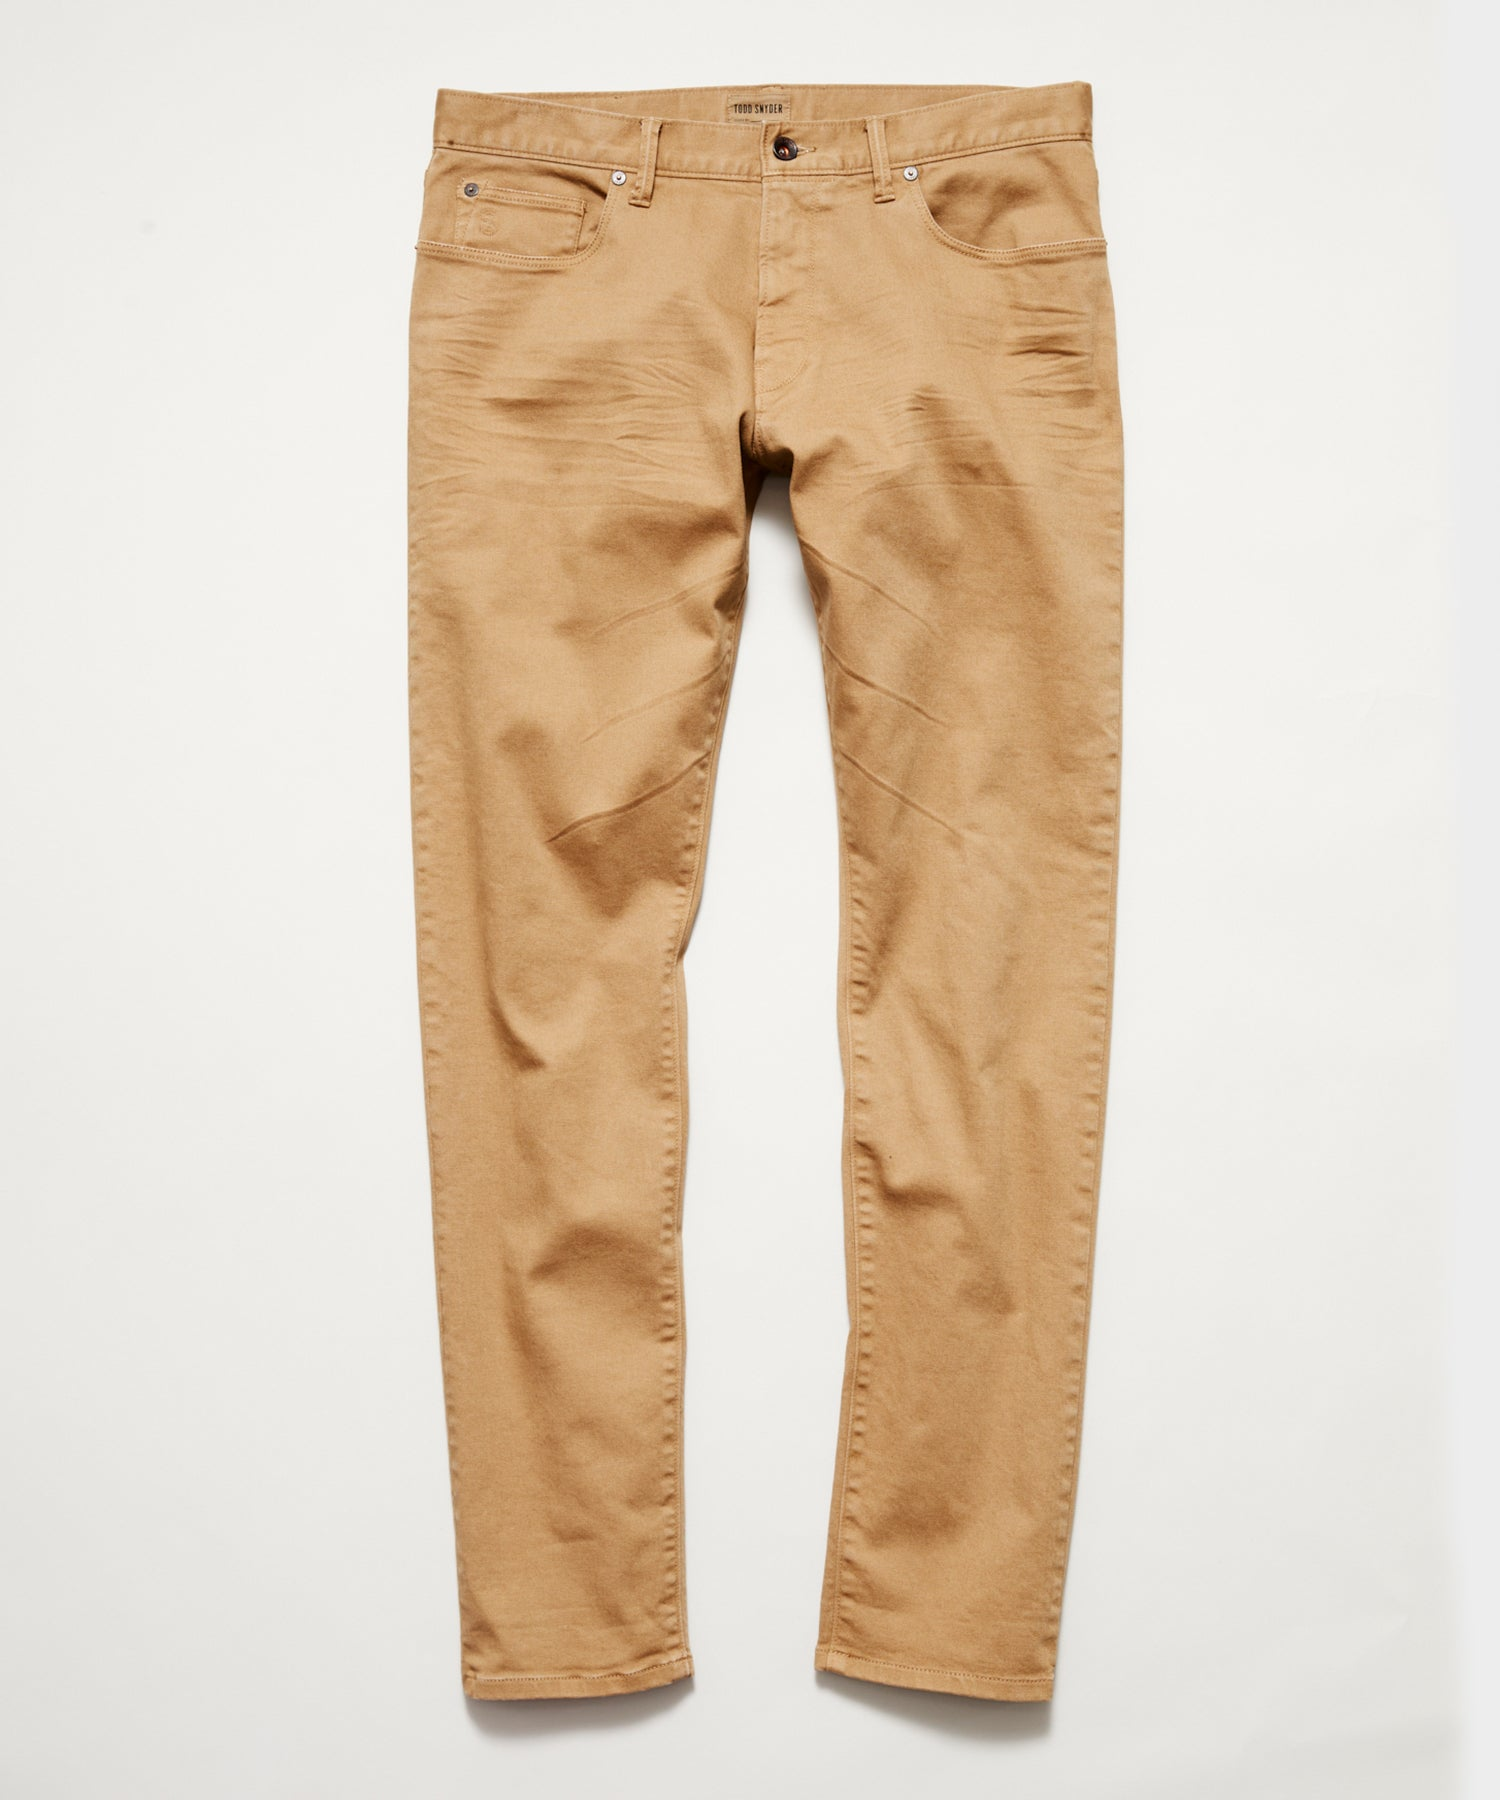 SLIM FIT 5-POCKET CHINO IN BARLEY